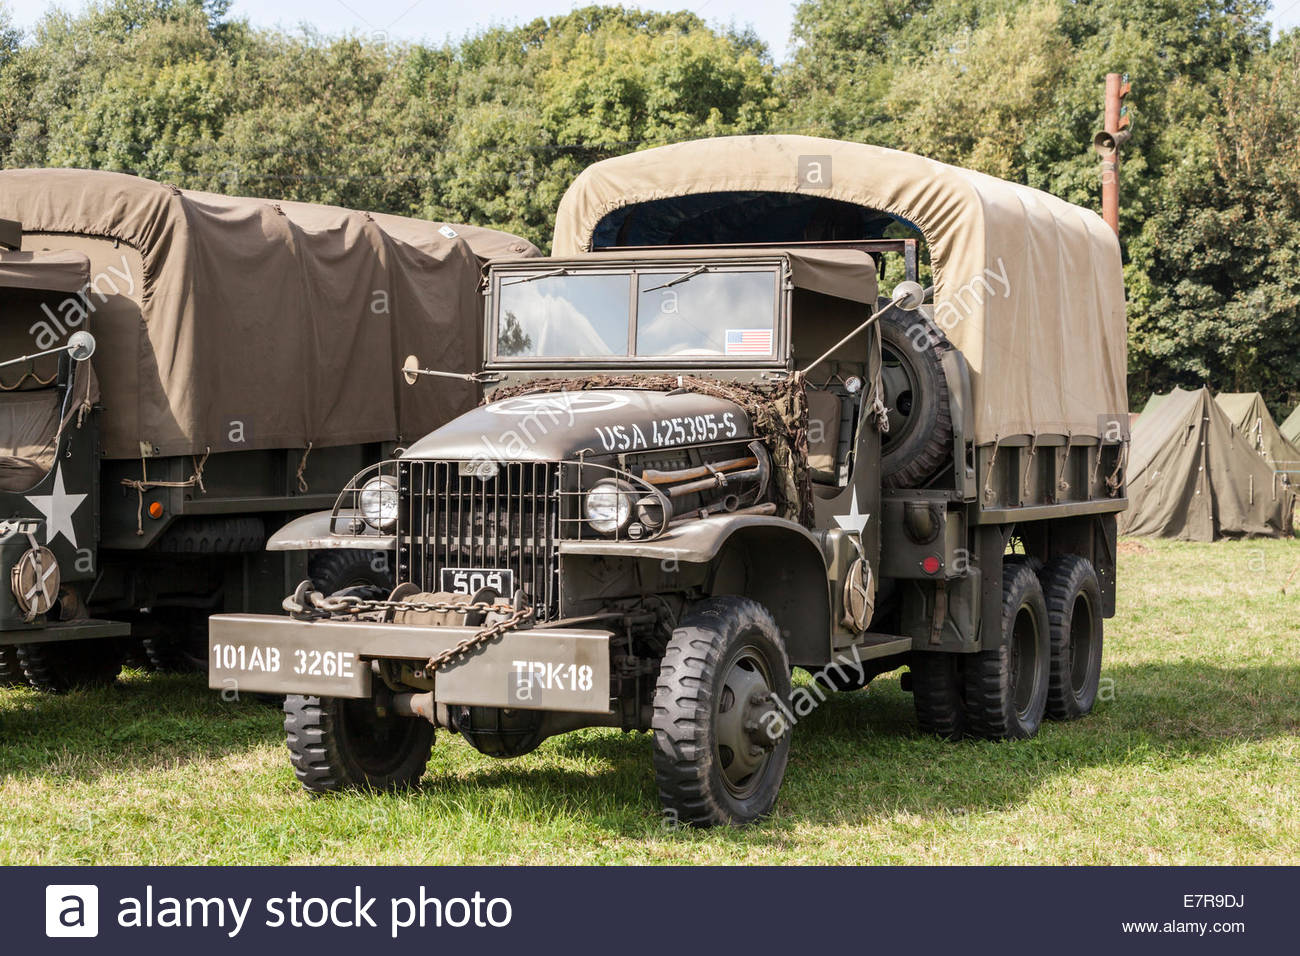 World War Two US Army Truck - Stock Image